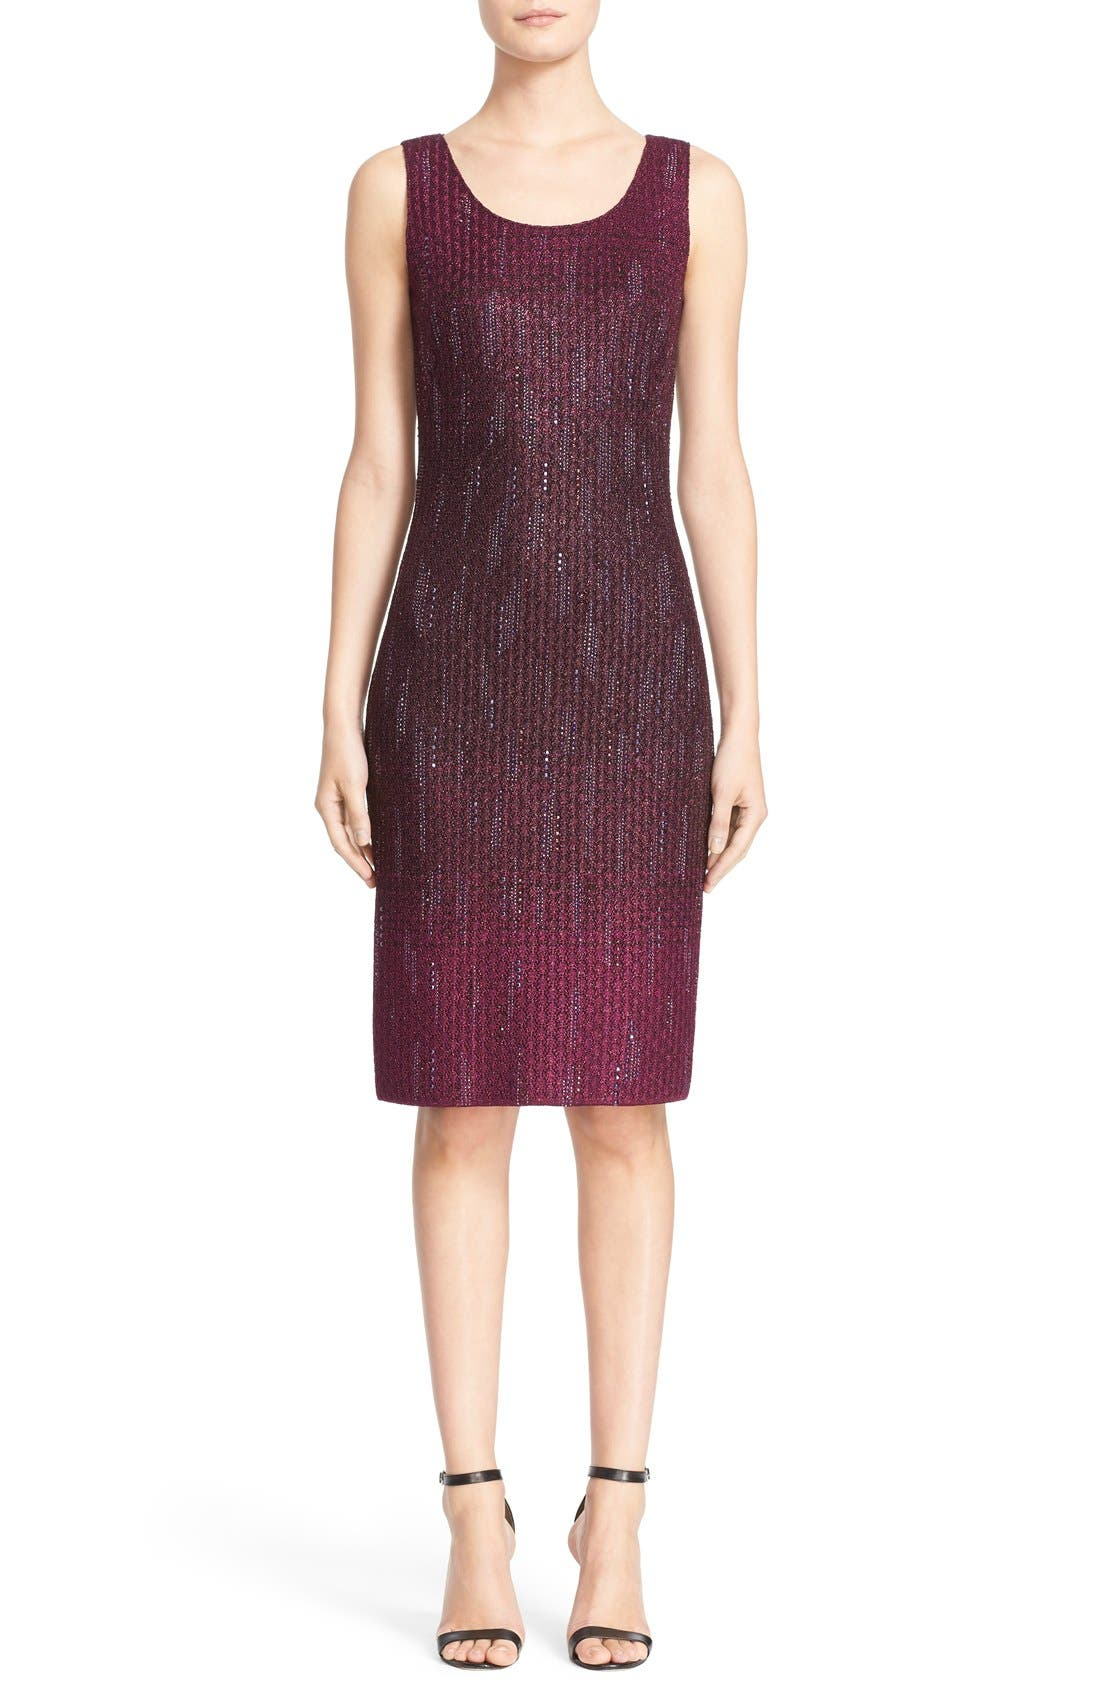 Alternate Image 1 Selected - St. John Collection 'Kira' Crystal Embellished Ombré Knit Sheath Dress